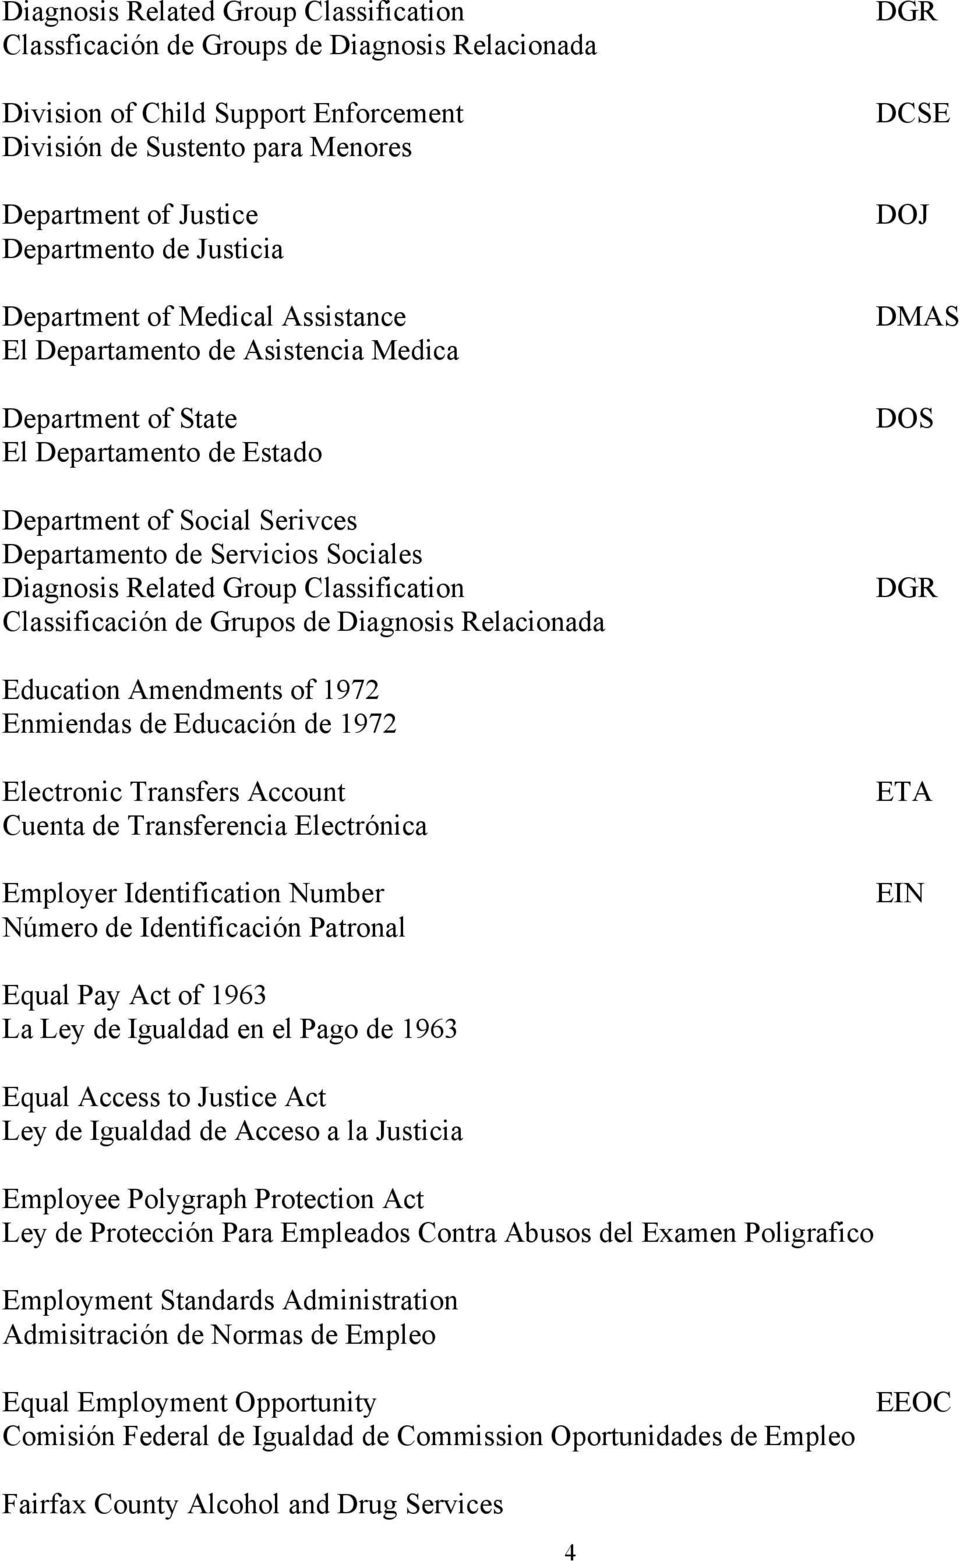 Related Group Classification Classificación de Grupos de Diagnosis Relacionada DGR DCSE DOJ DMAS DOS DGR Education Amendments of 1972 Enmiendas de Educación de 1972 Electronic Transfers Account